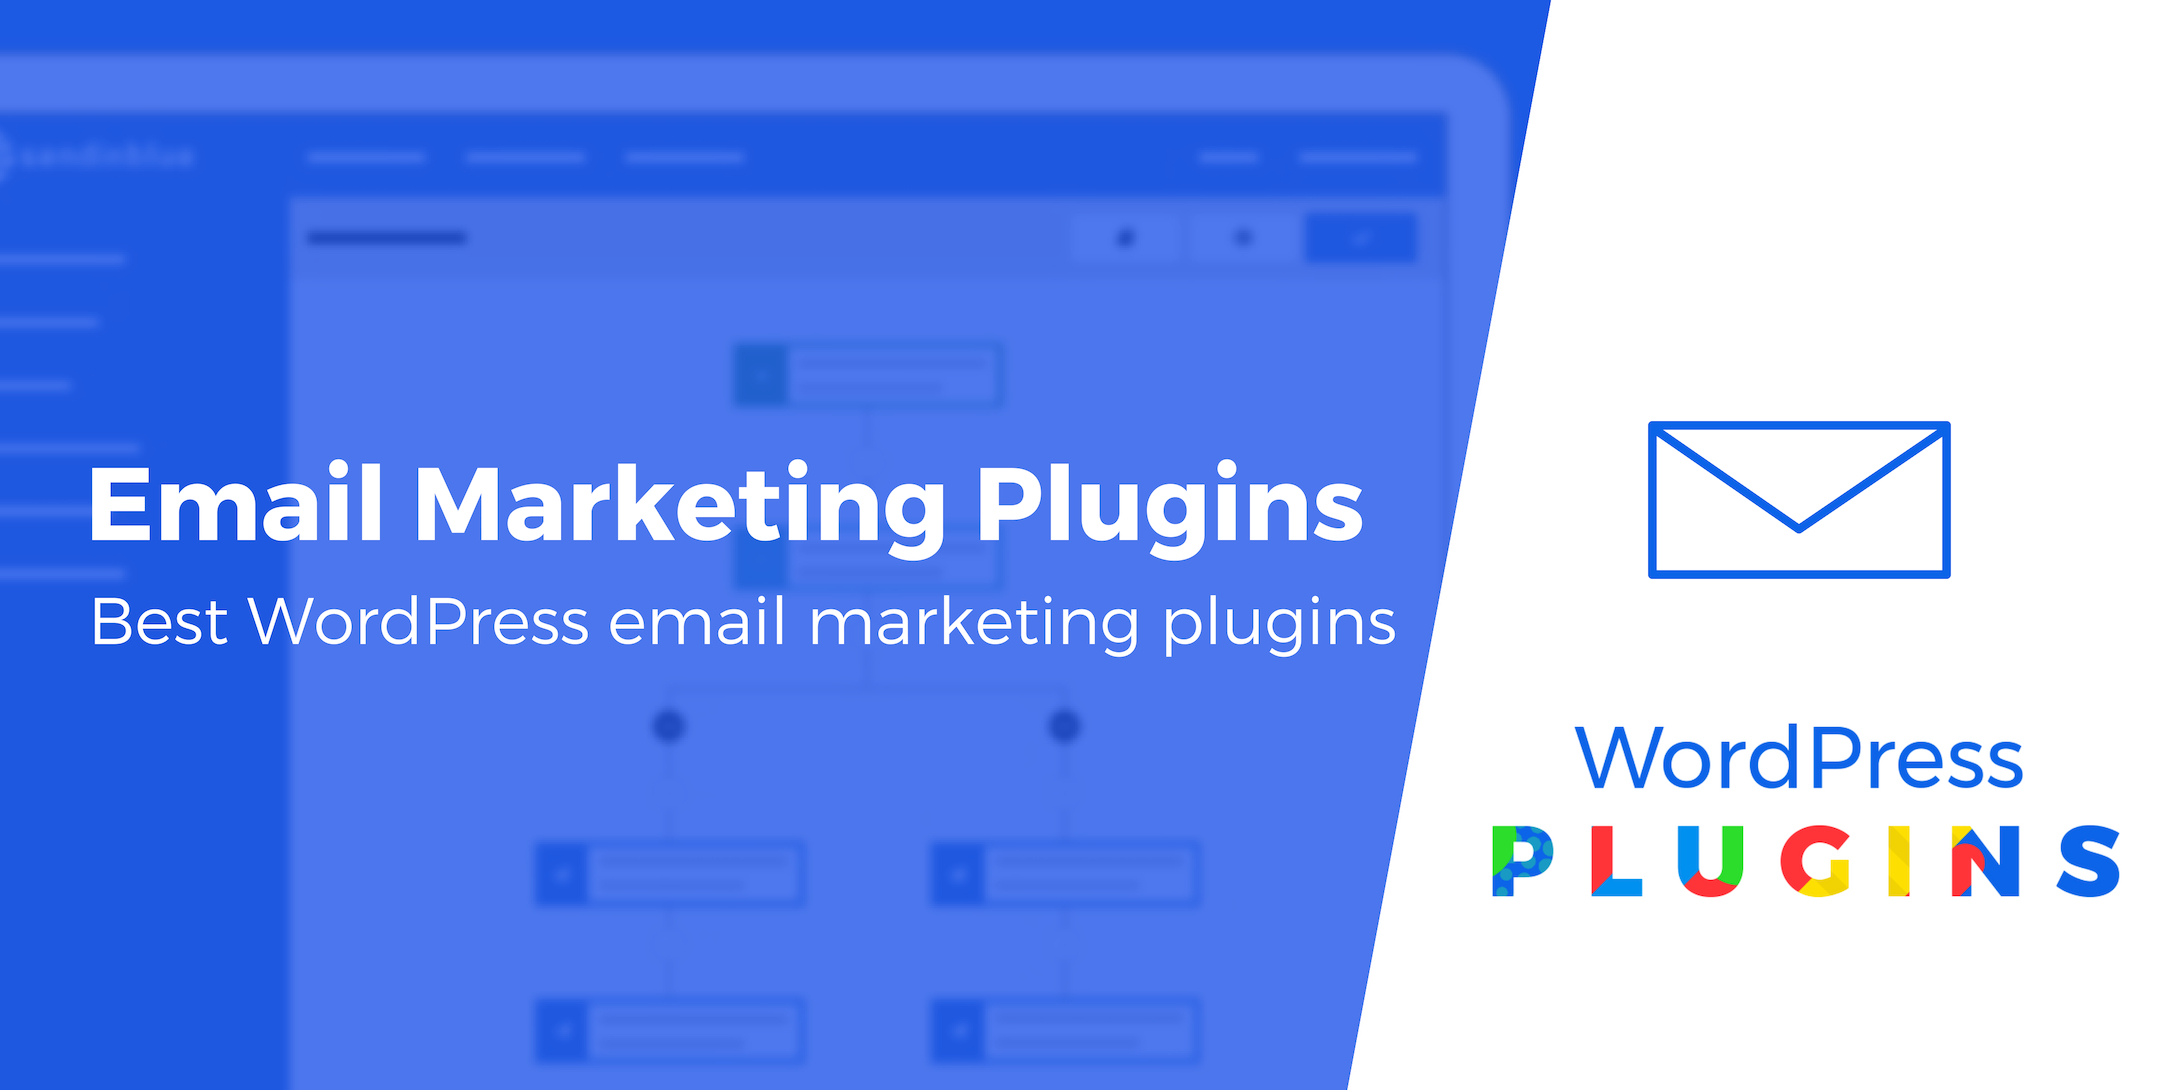 Best WordPress Email Marketing Plugins